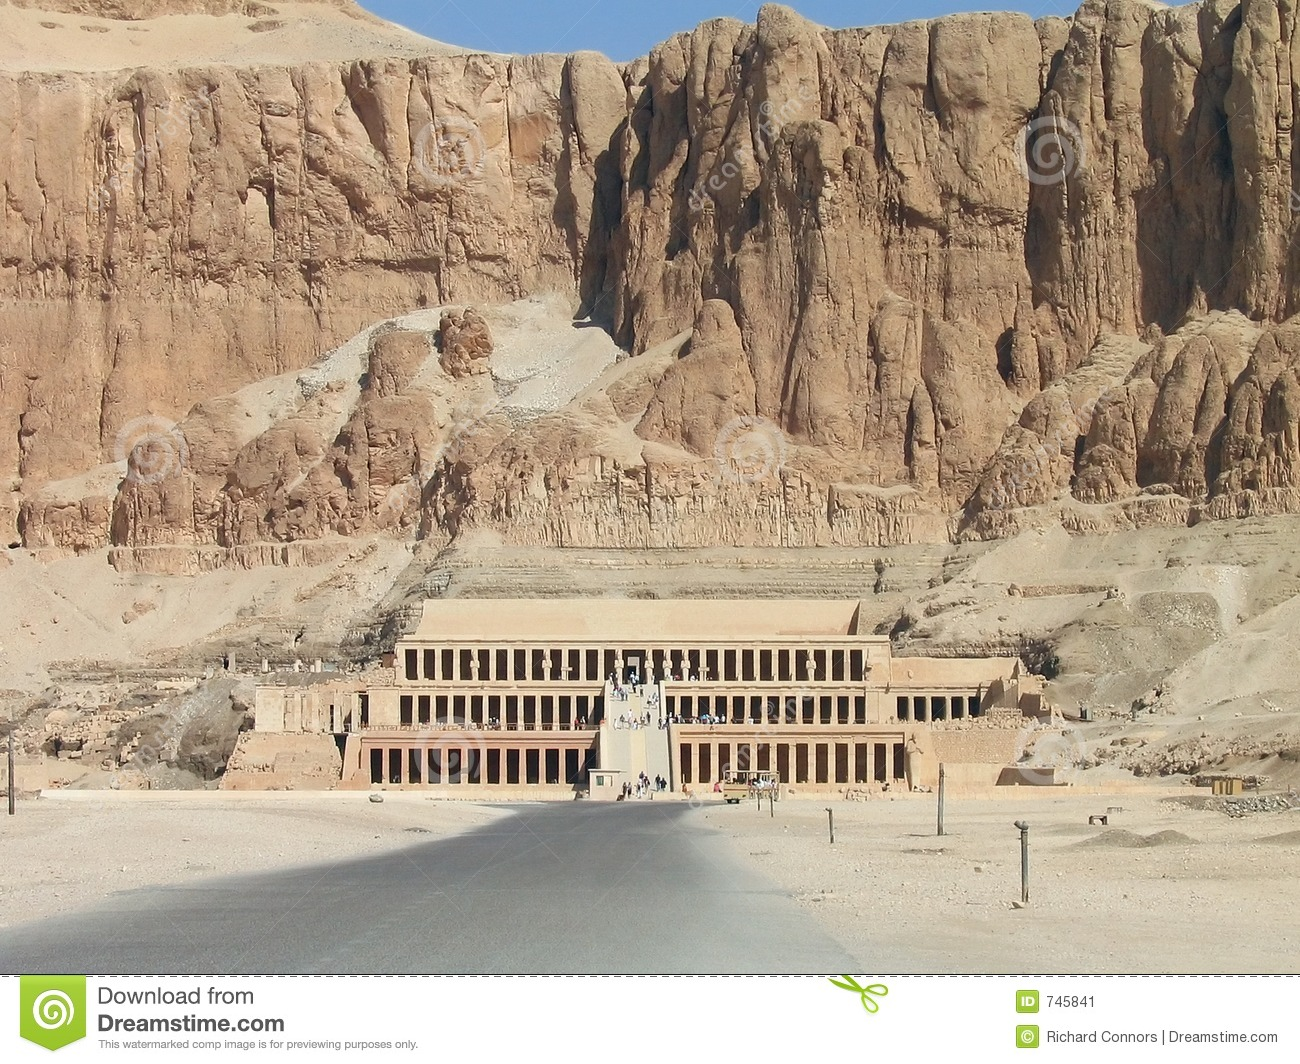 haremhab compared to queen hatshepsut How are hatshepsut and cleopatra the same save cancel already exists would you like to did queen hatshepsut rule ancient egypt when cleopatra was little.